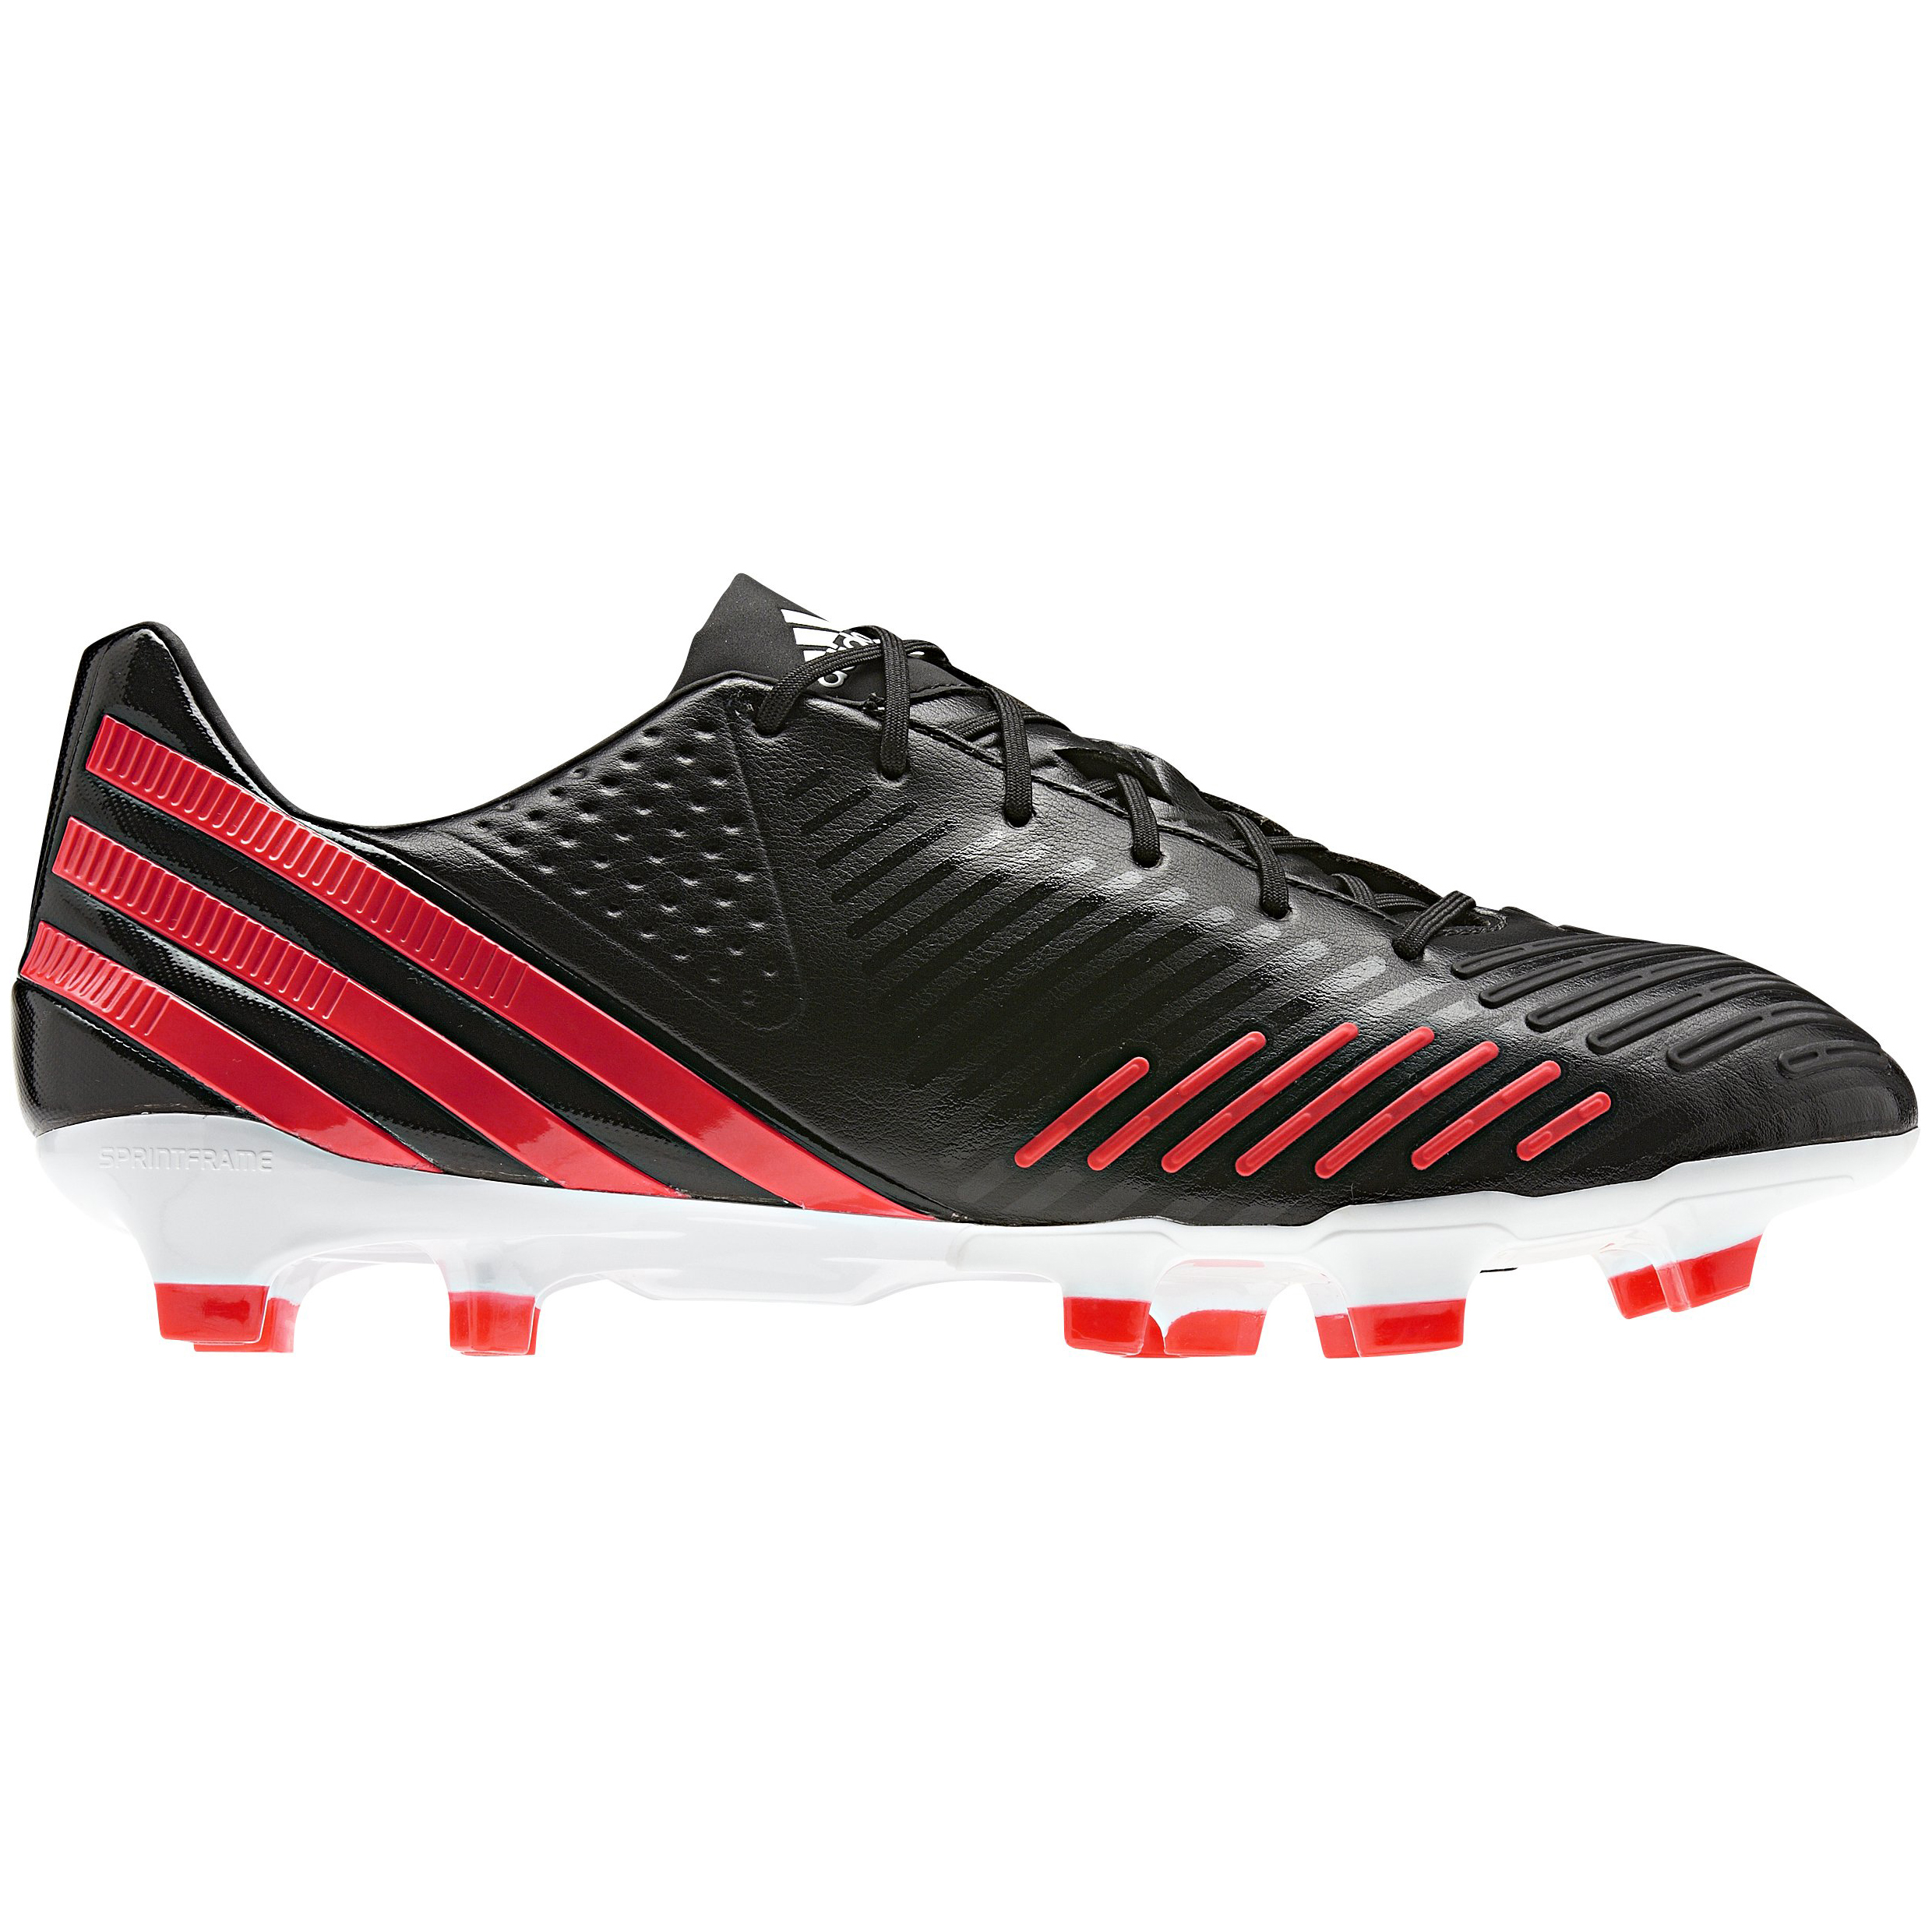 Predator LZ TRX FG Black/Pop/White